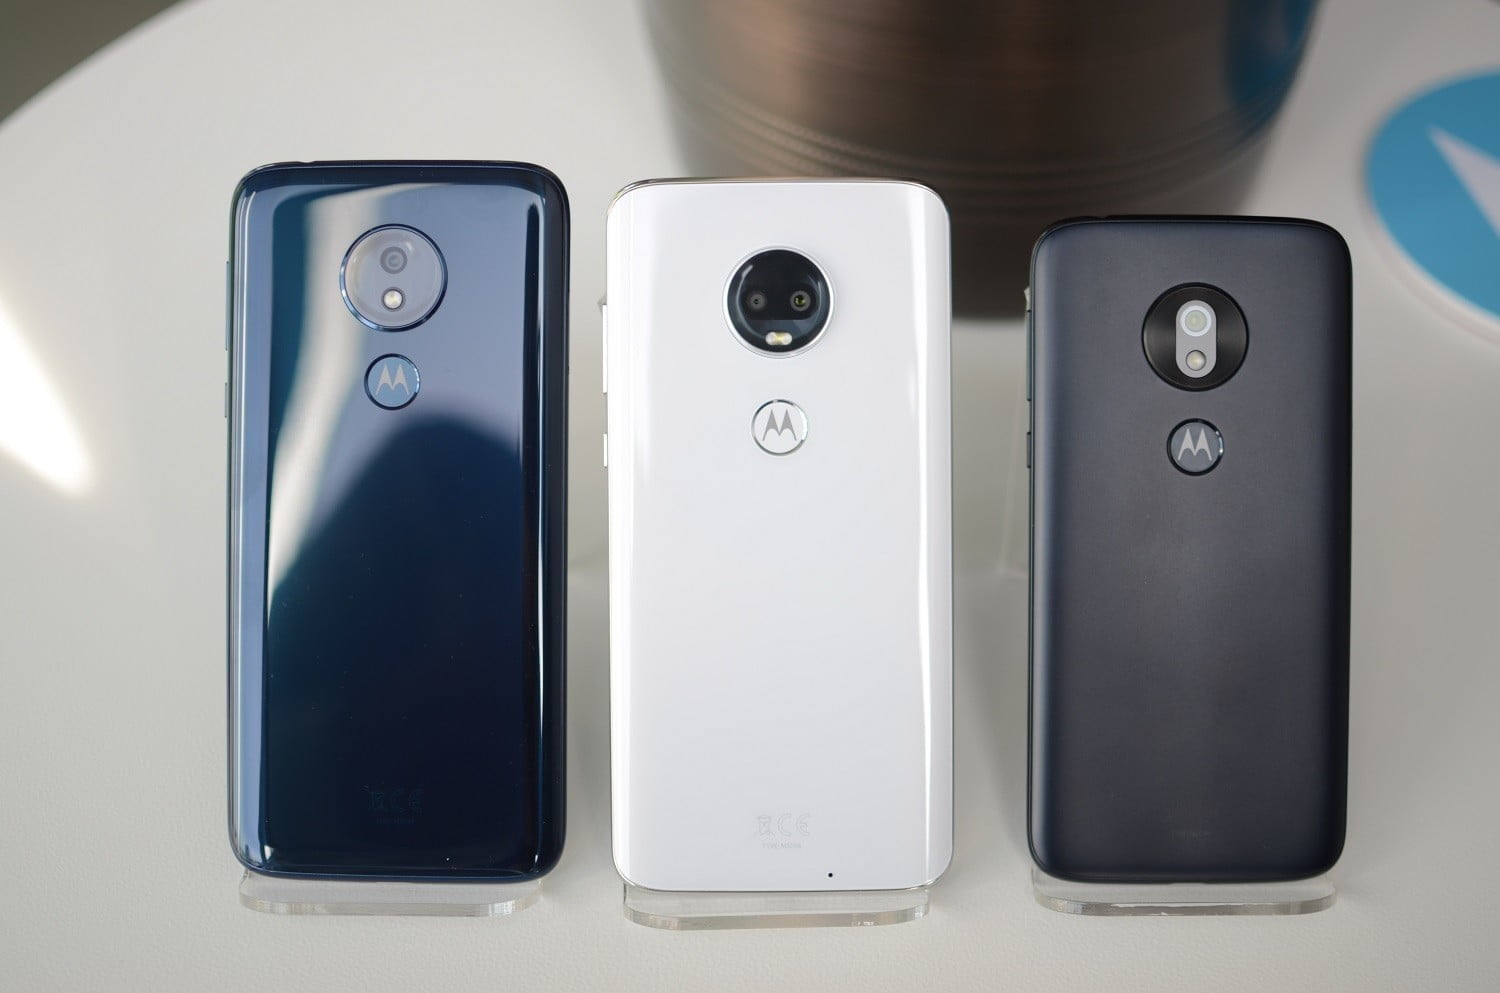 872c0aaf373 We can see popular design trends filtering down to the budget segment with  the G series. The Moto G7 has a teardrop notch in the display